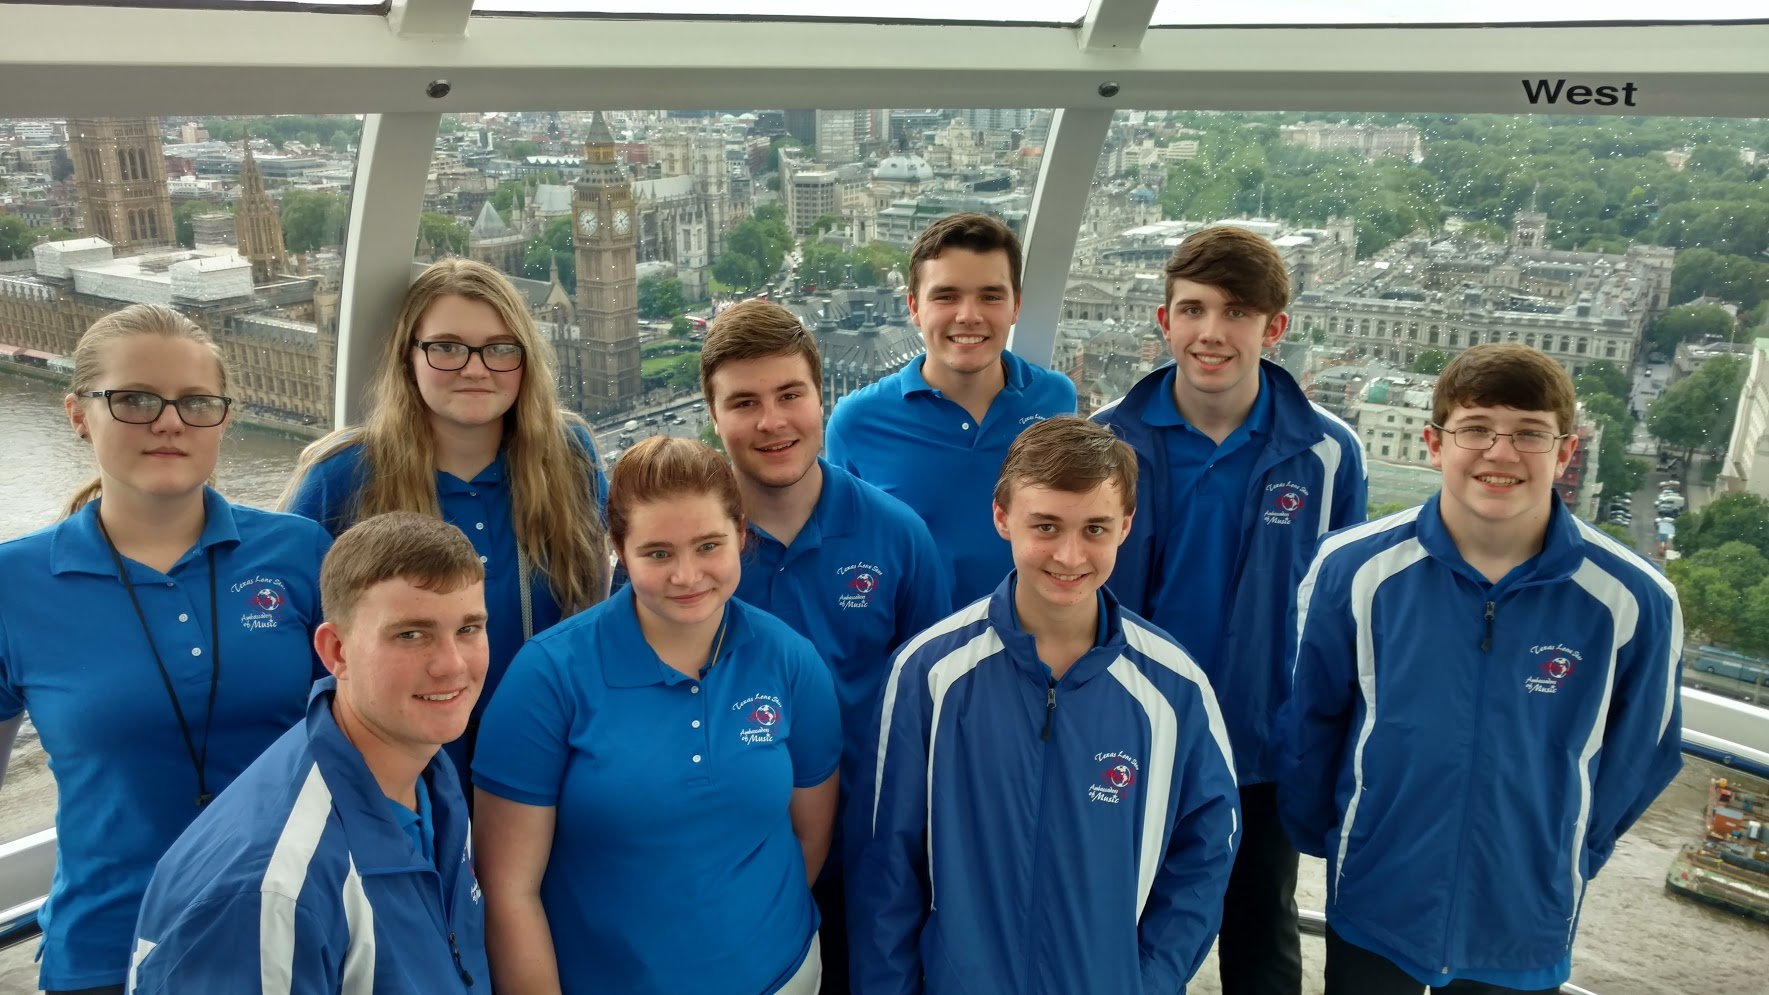 North Lamar and Paris band students gather on the London Eye overlooking Parliament while on their trip to Europe. Those who represented Lamar County beginning front row left are Levi Graham, Michalla Barr,Alex Draper and Hudson Jones. In back are Emily Foster, Emily Brownfield, Eric Shelton, Thomas Zimmerman and Seth Jones.